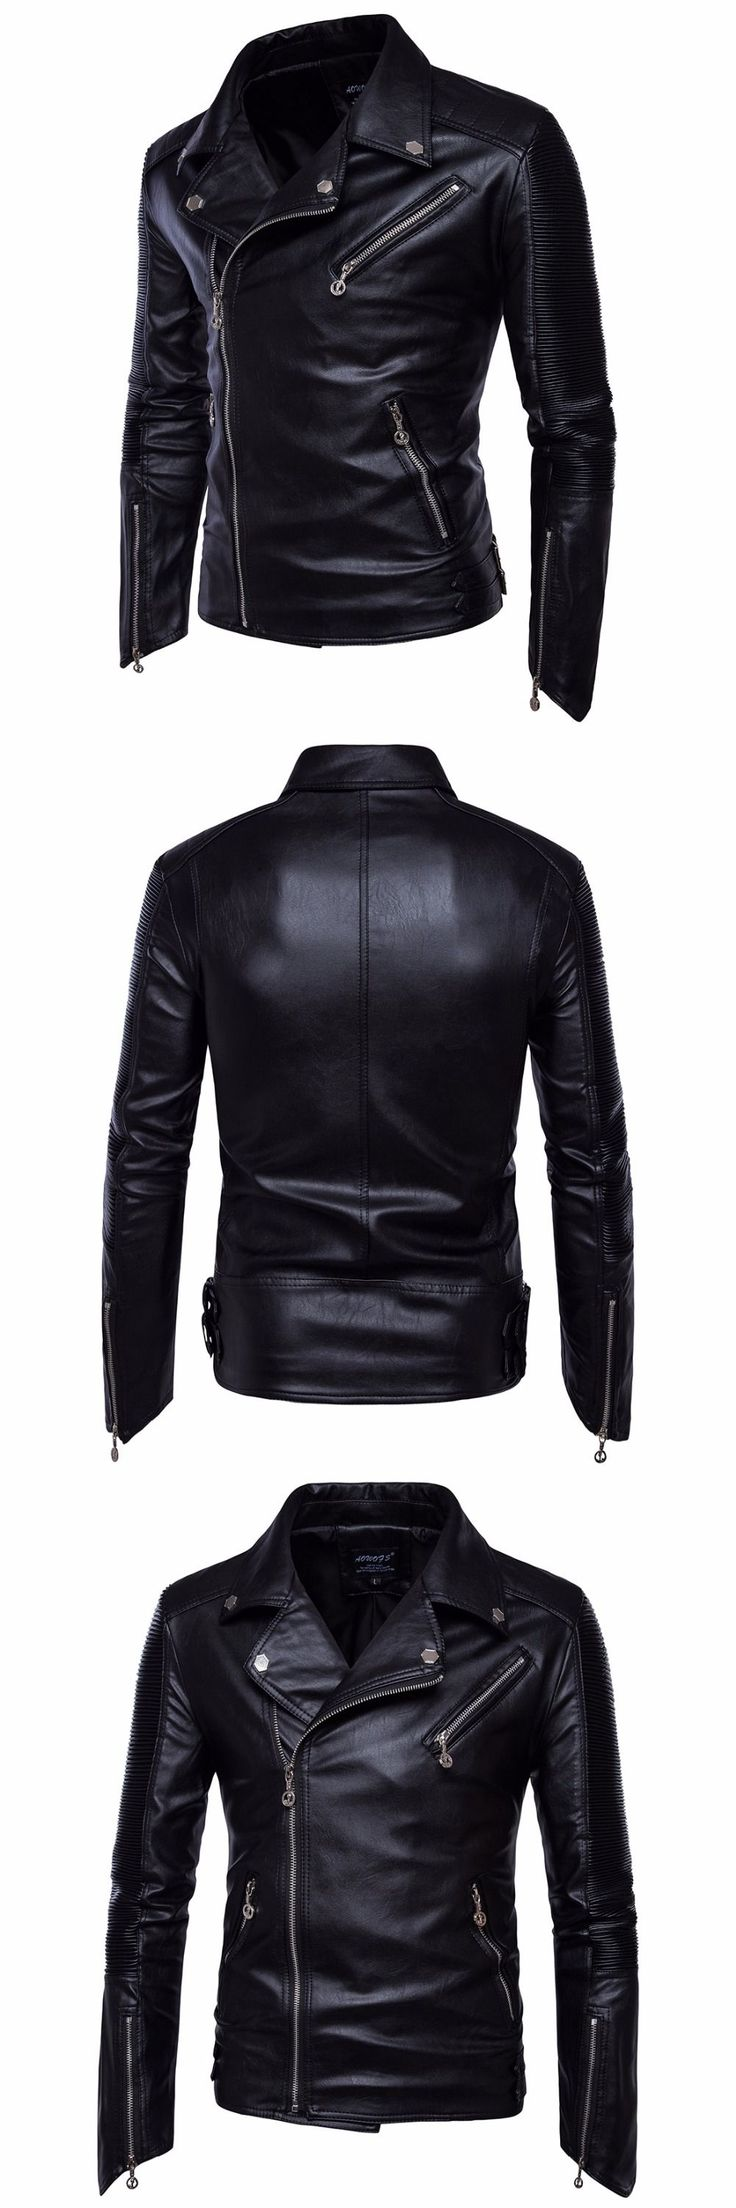 Men Classic Style Motorcycling Leather Jacket Mens Winter Slim Black PU Jackets Male Leather Jacket Clothing Fashion Coats